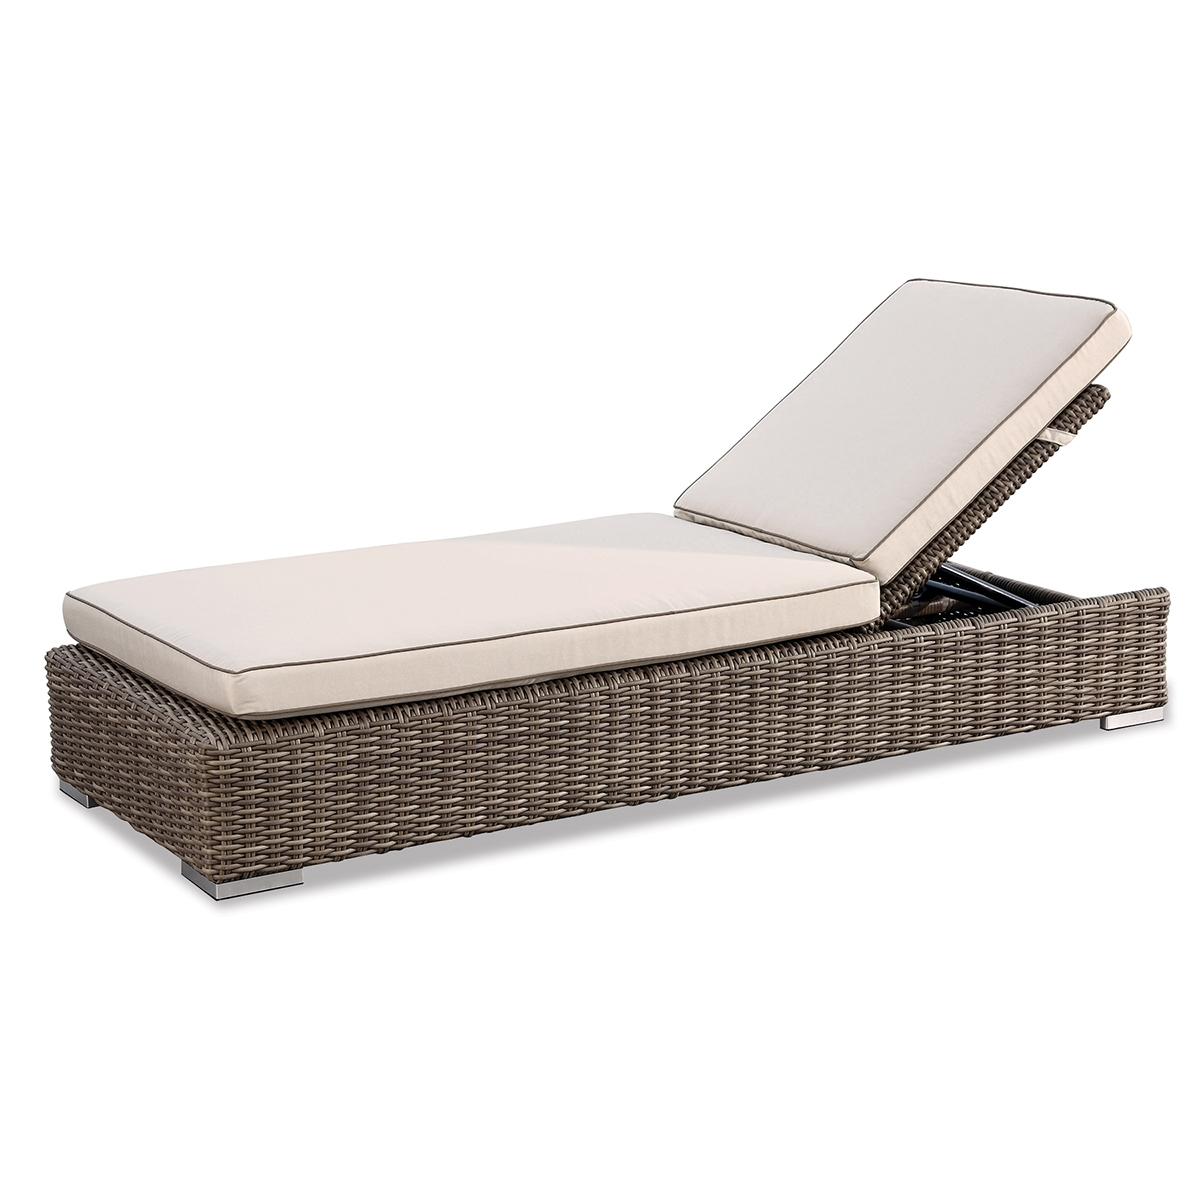 Hmp Chaise Wb Wicker Lounge Sunbrella Fabrics Hampton Collection With 2018 Hampton Bay Chaise Lounges (View 15 of 15)